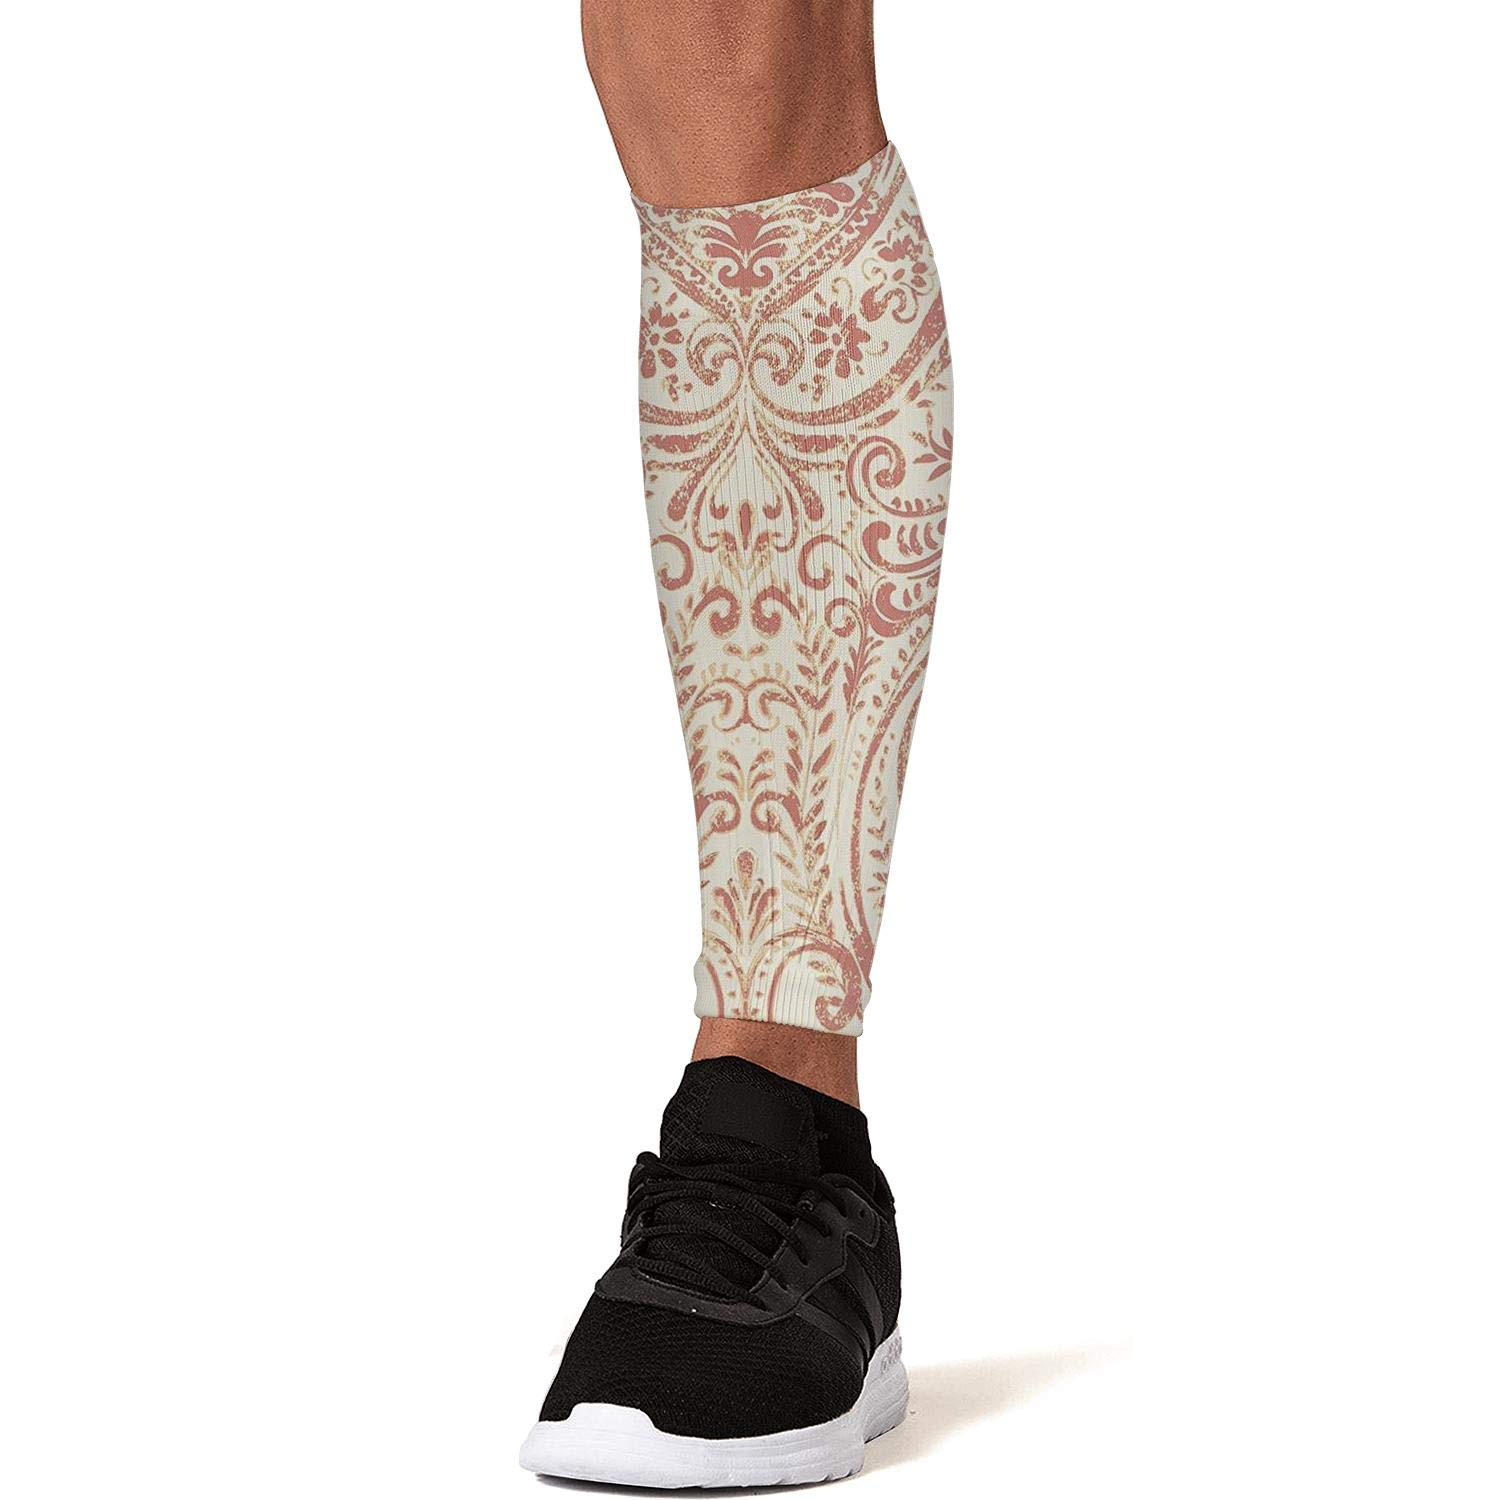 Smilelolly coral Calf Compression Sleeves Helps Pain Relief Leg Sleeves for Men Women